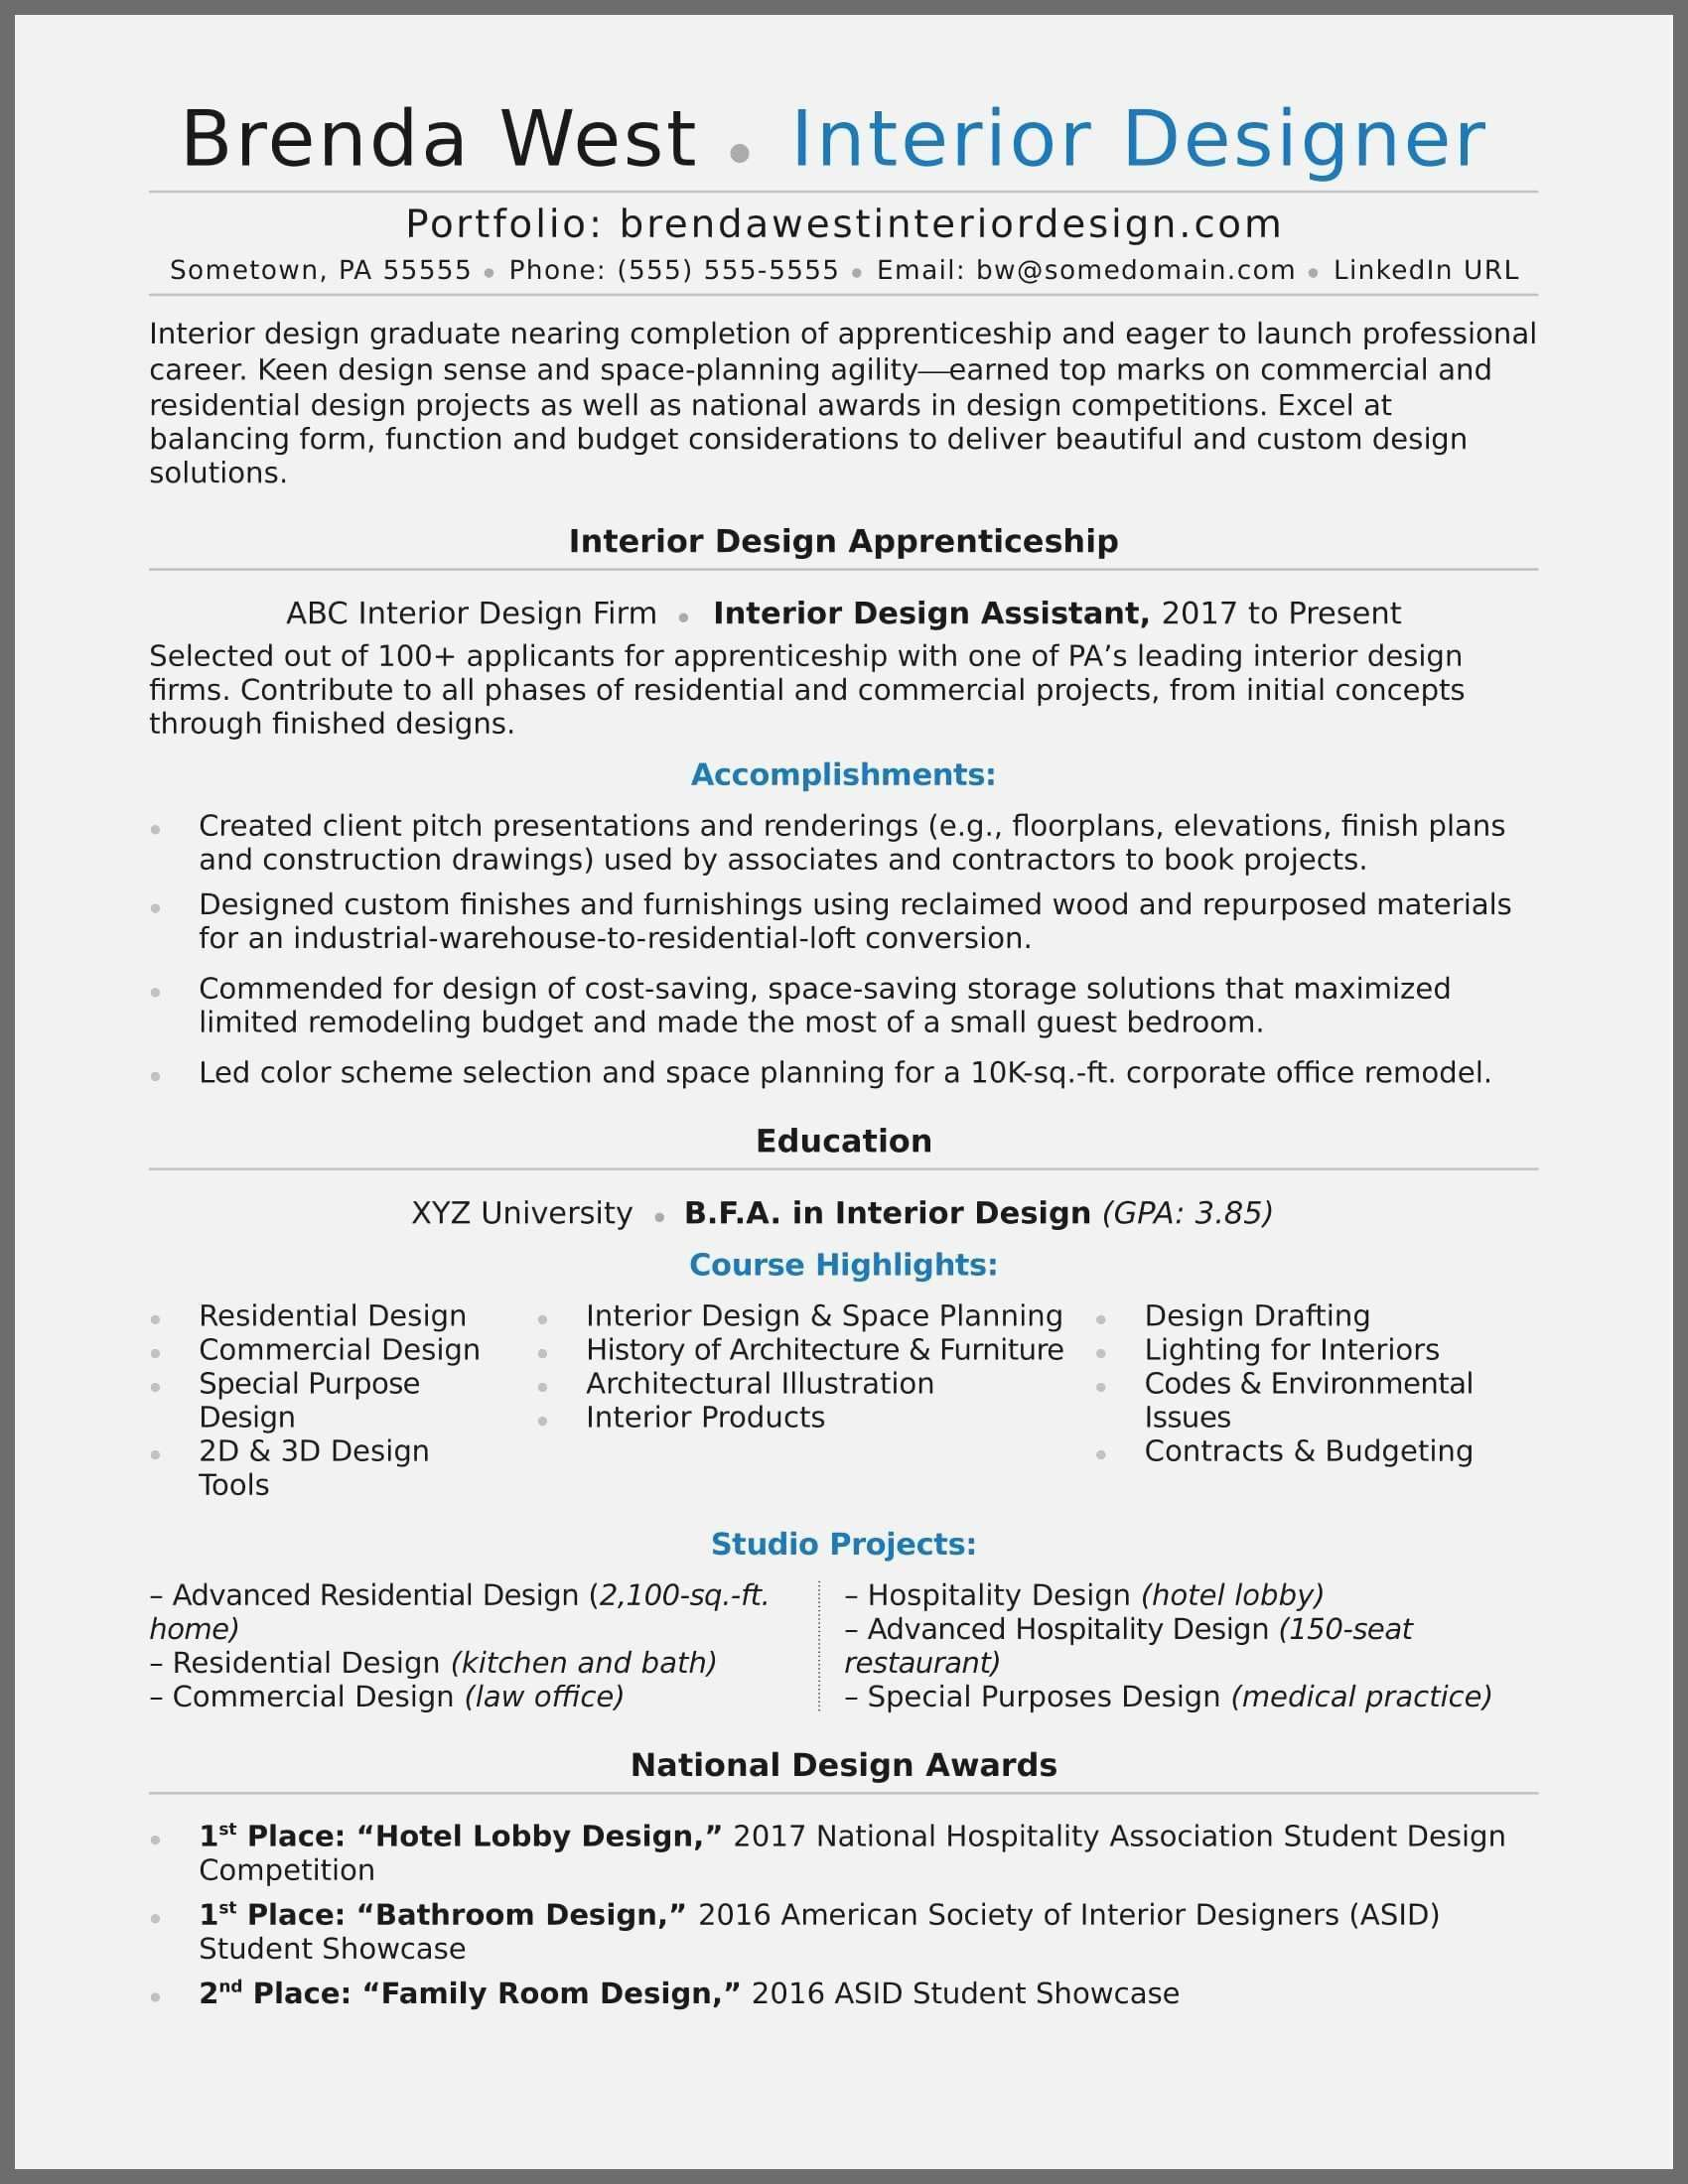 71 Awesome Collection Of Healthcare Resume Examples 2016 Teknologi